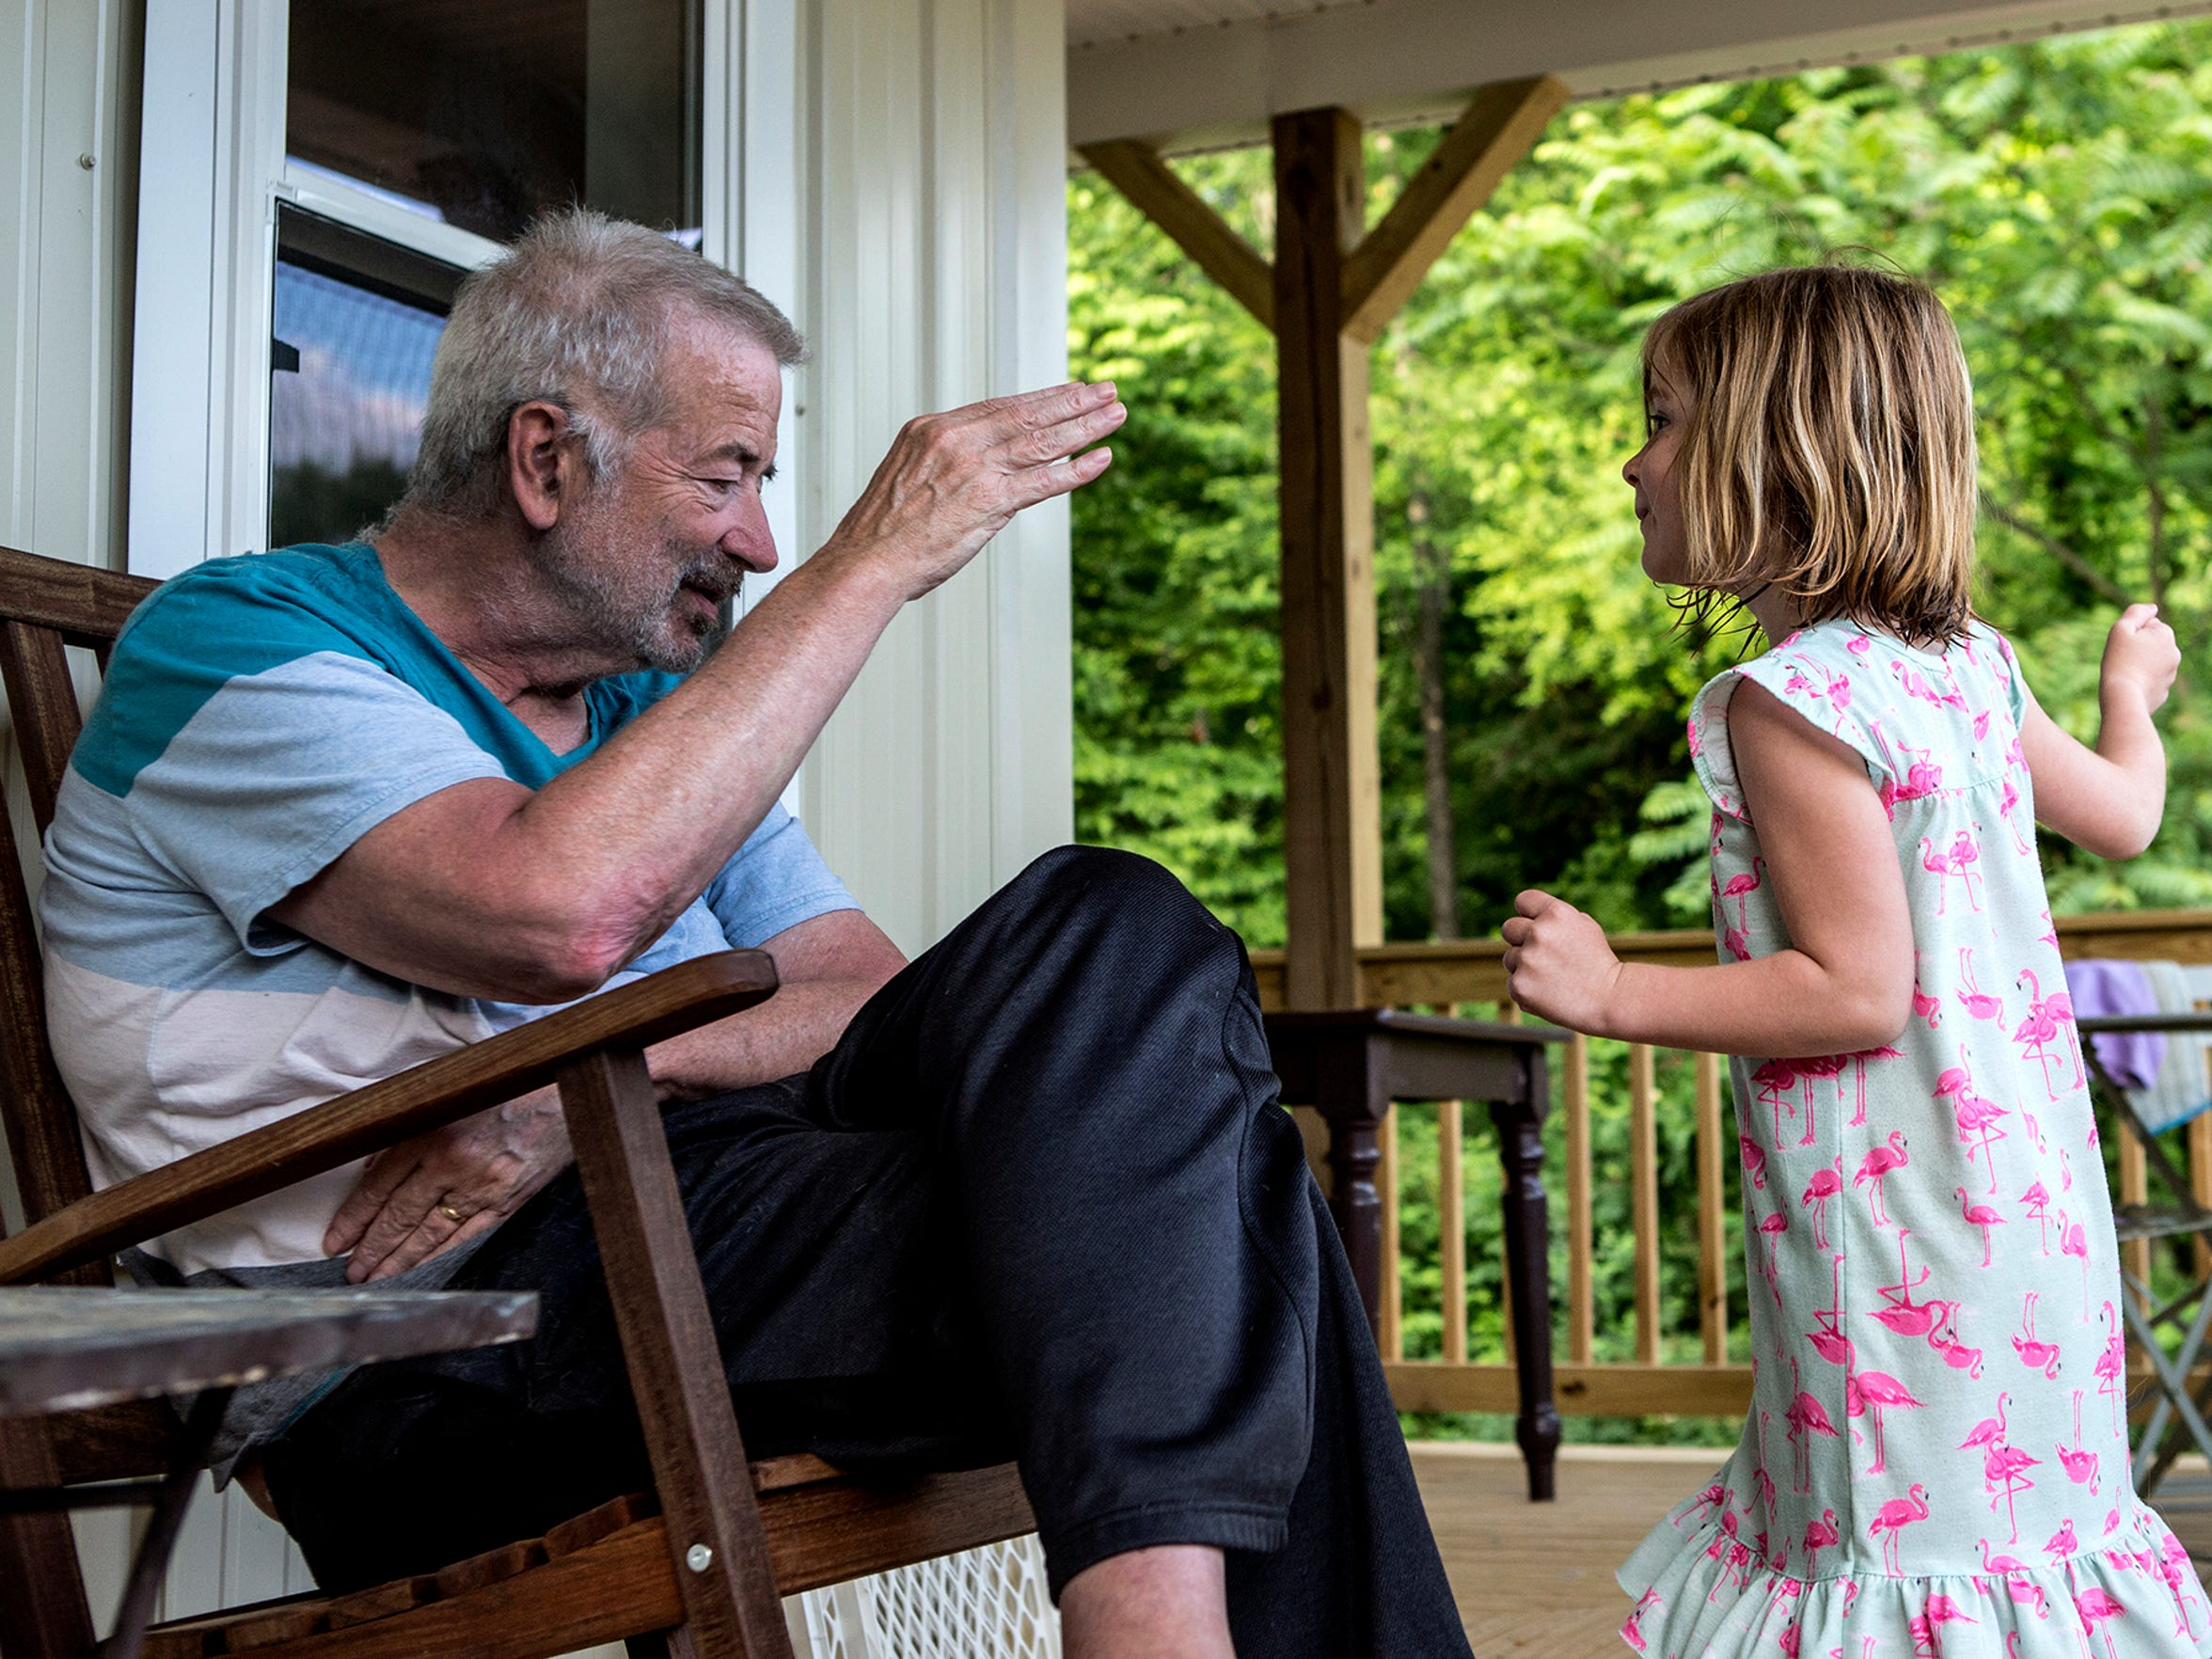 Five-year-old Reese often loses patience with her Grandpa